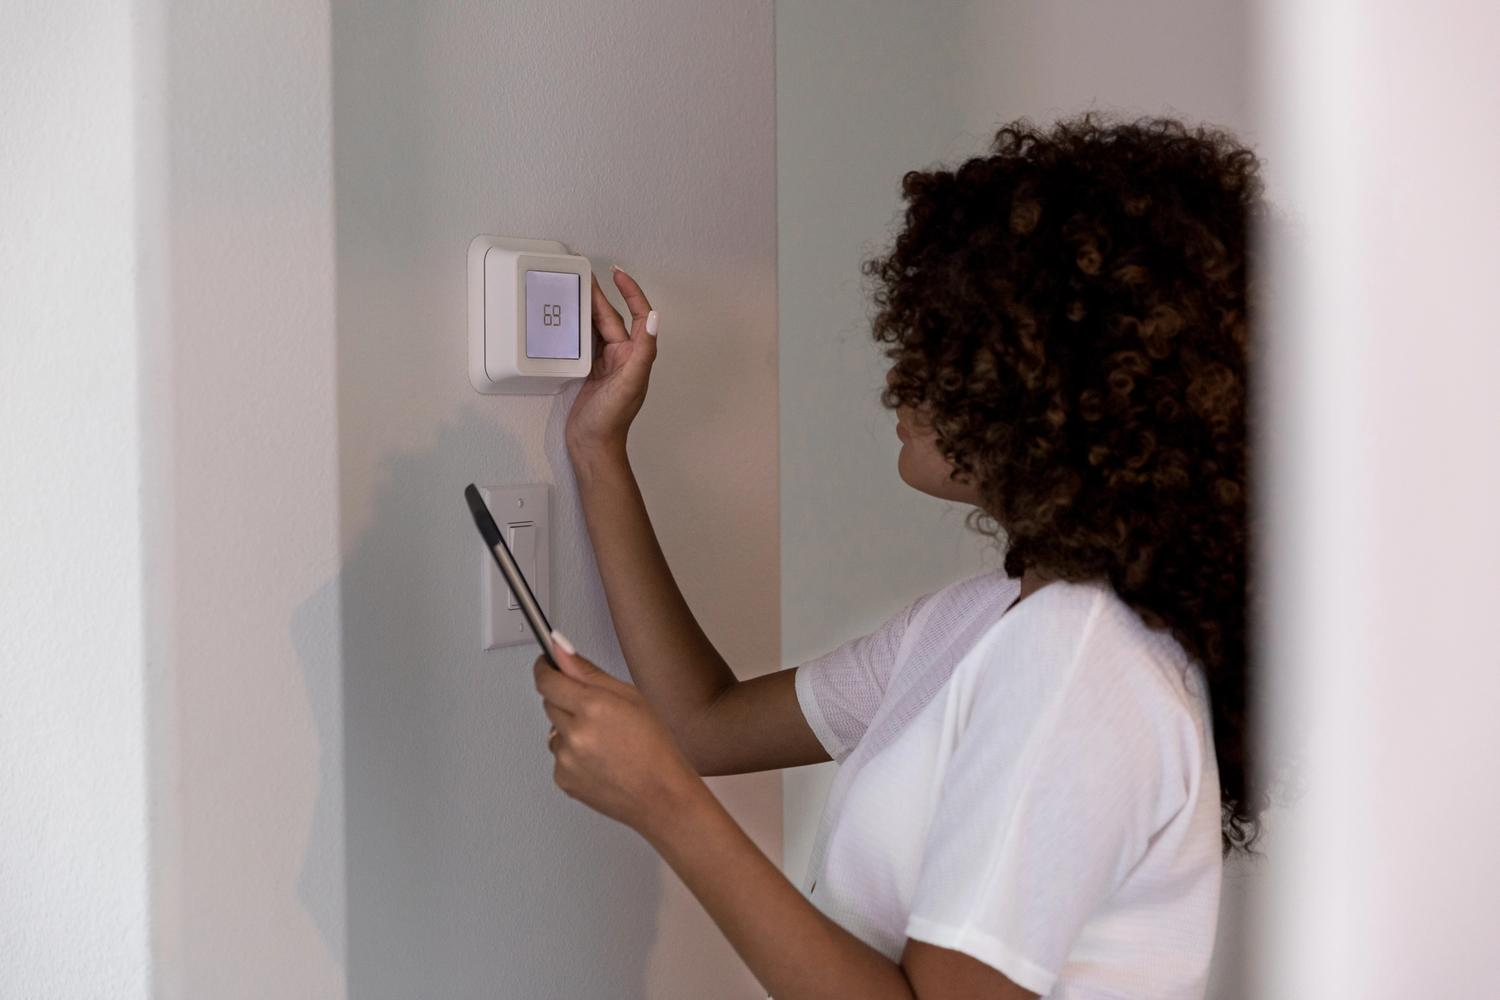 woman using smart thermostat on wall while holding mobile phone